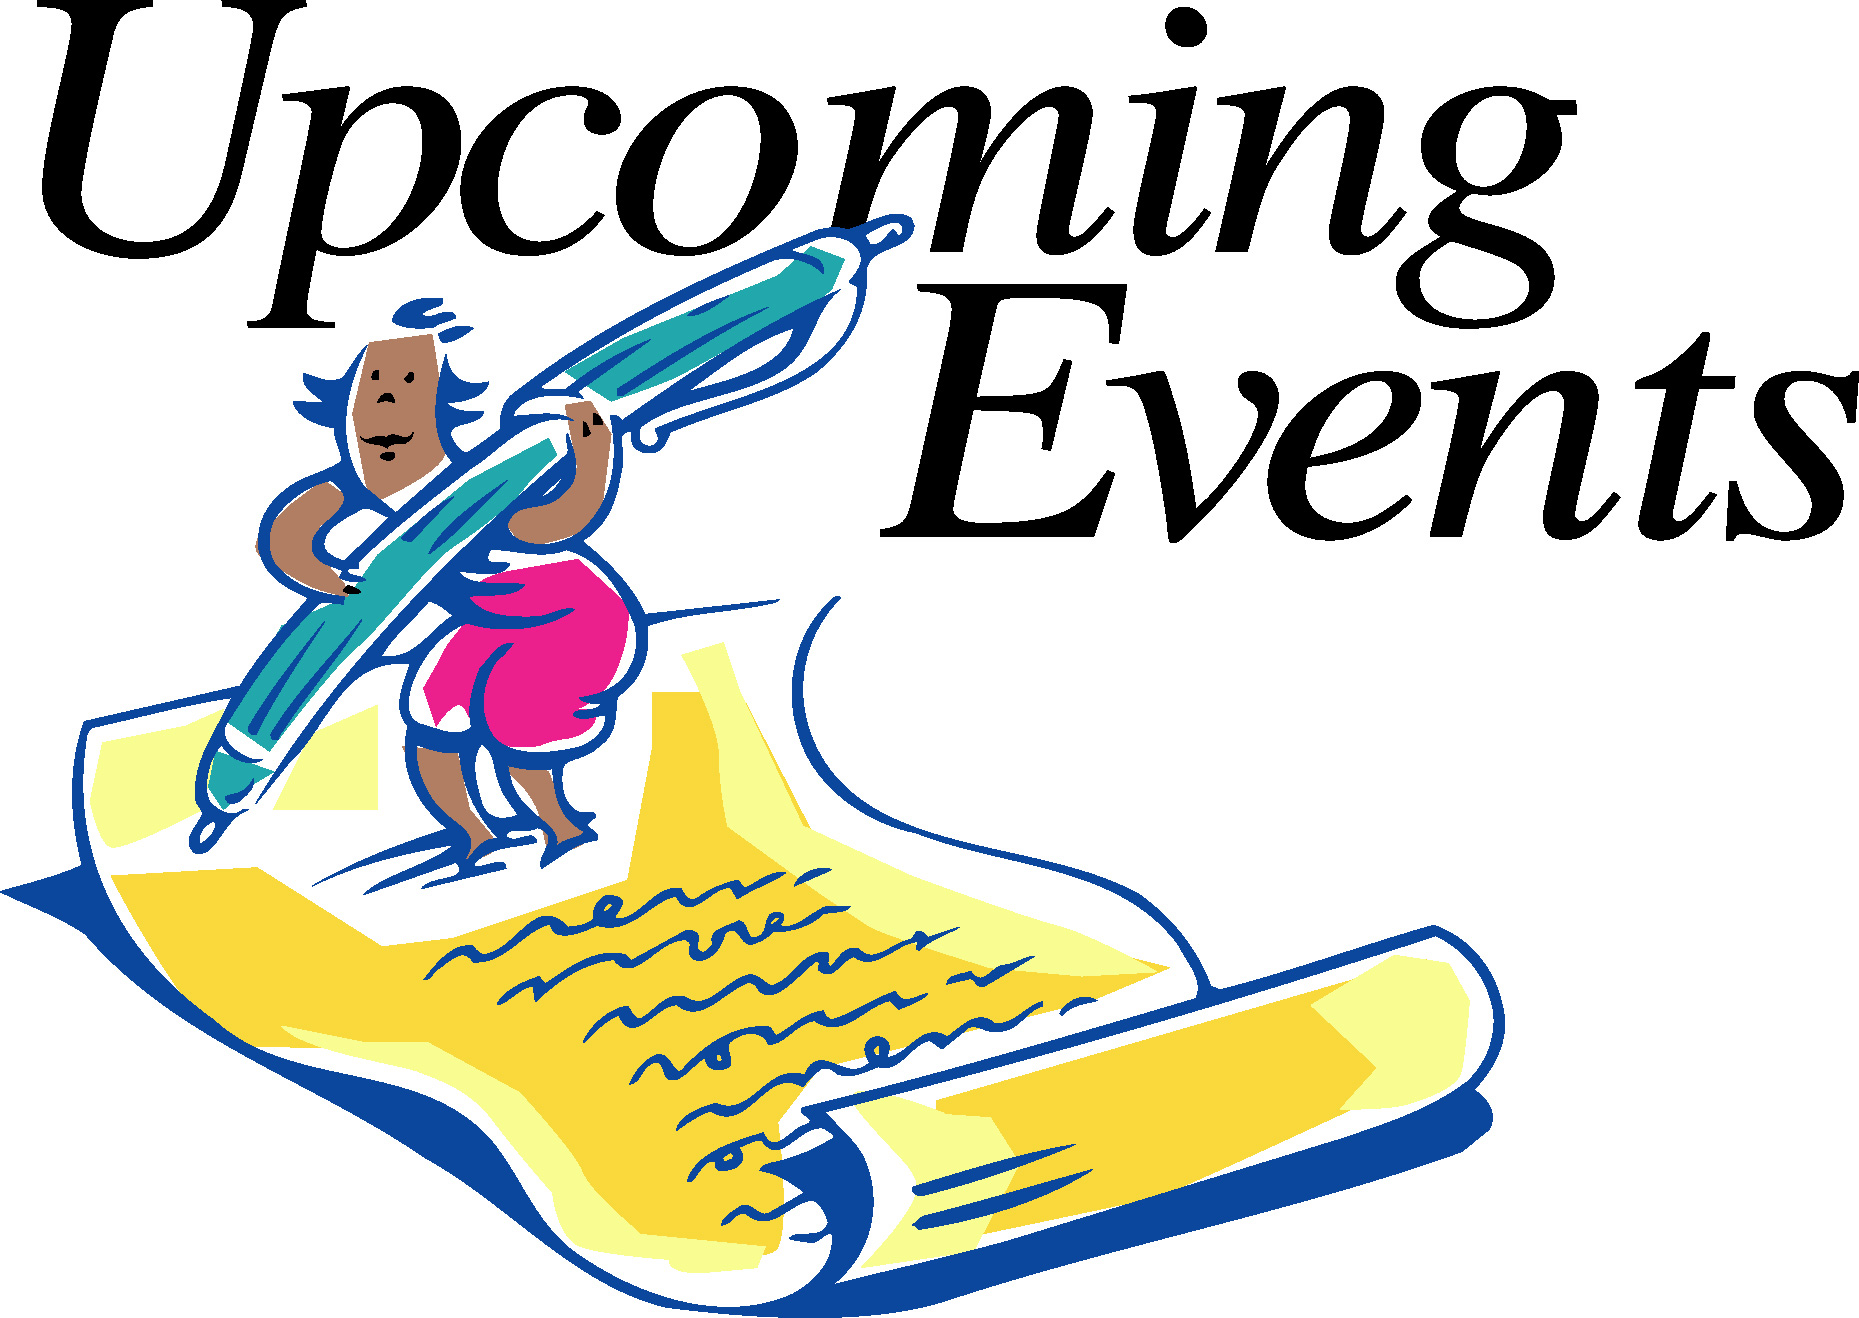 Upcoming Events Clipart. Your